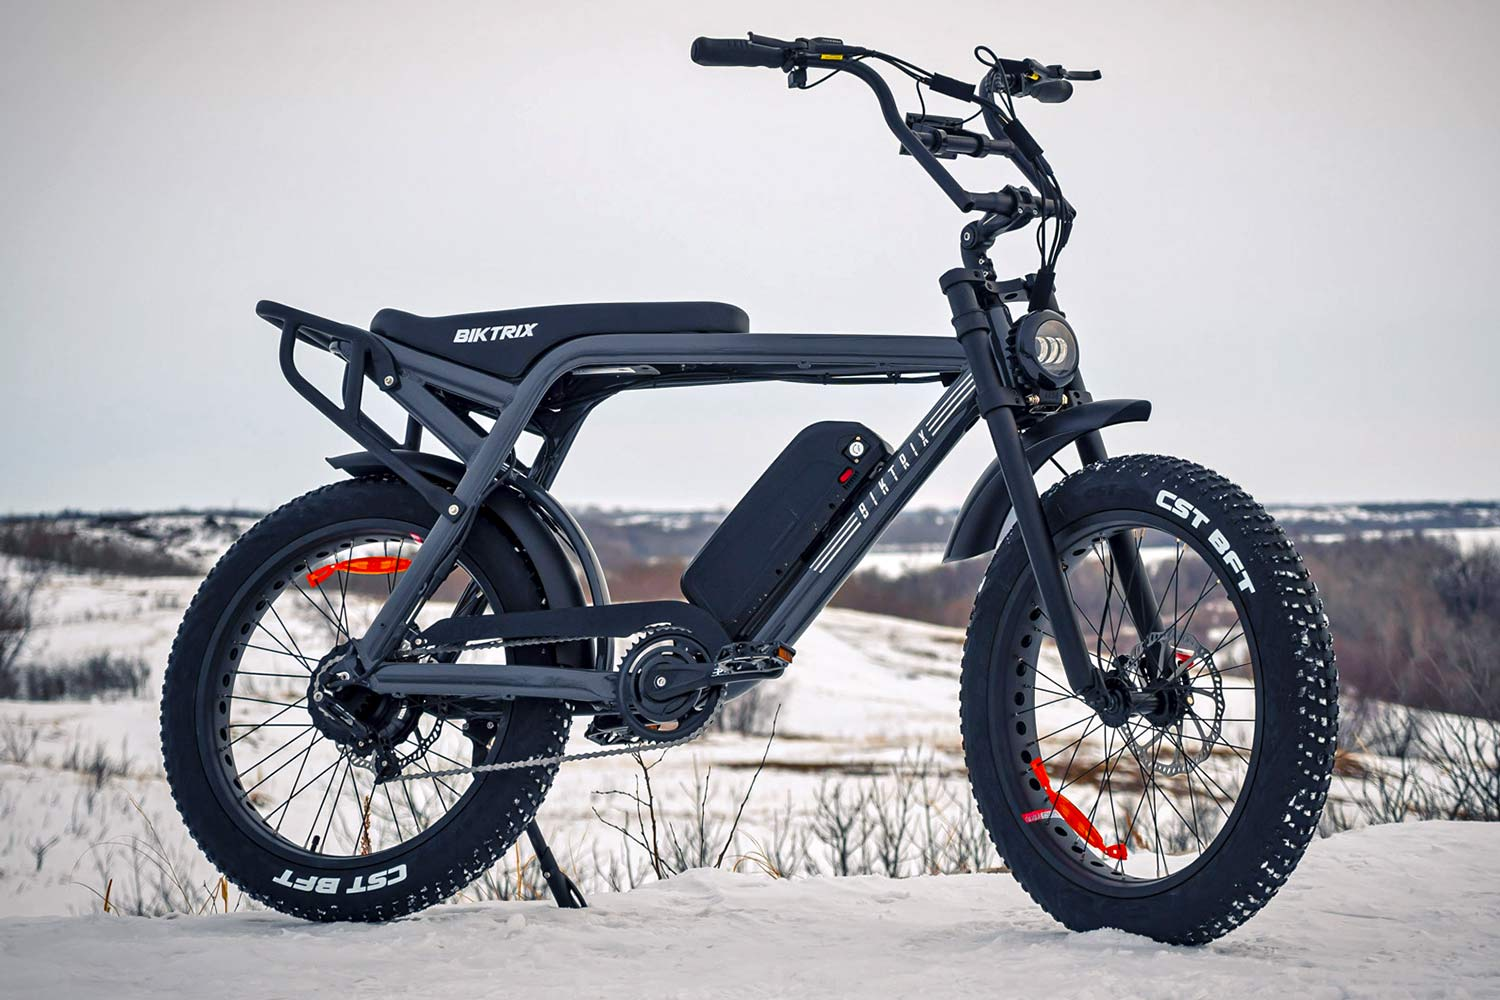 Biktrix Moto e-bike, urban mobility eMTB e-moped alternative transportation, snowy